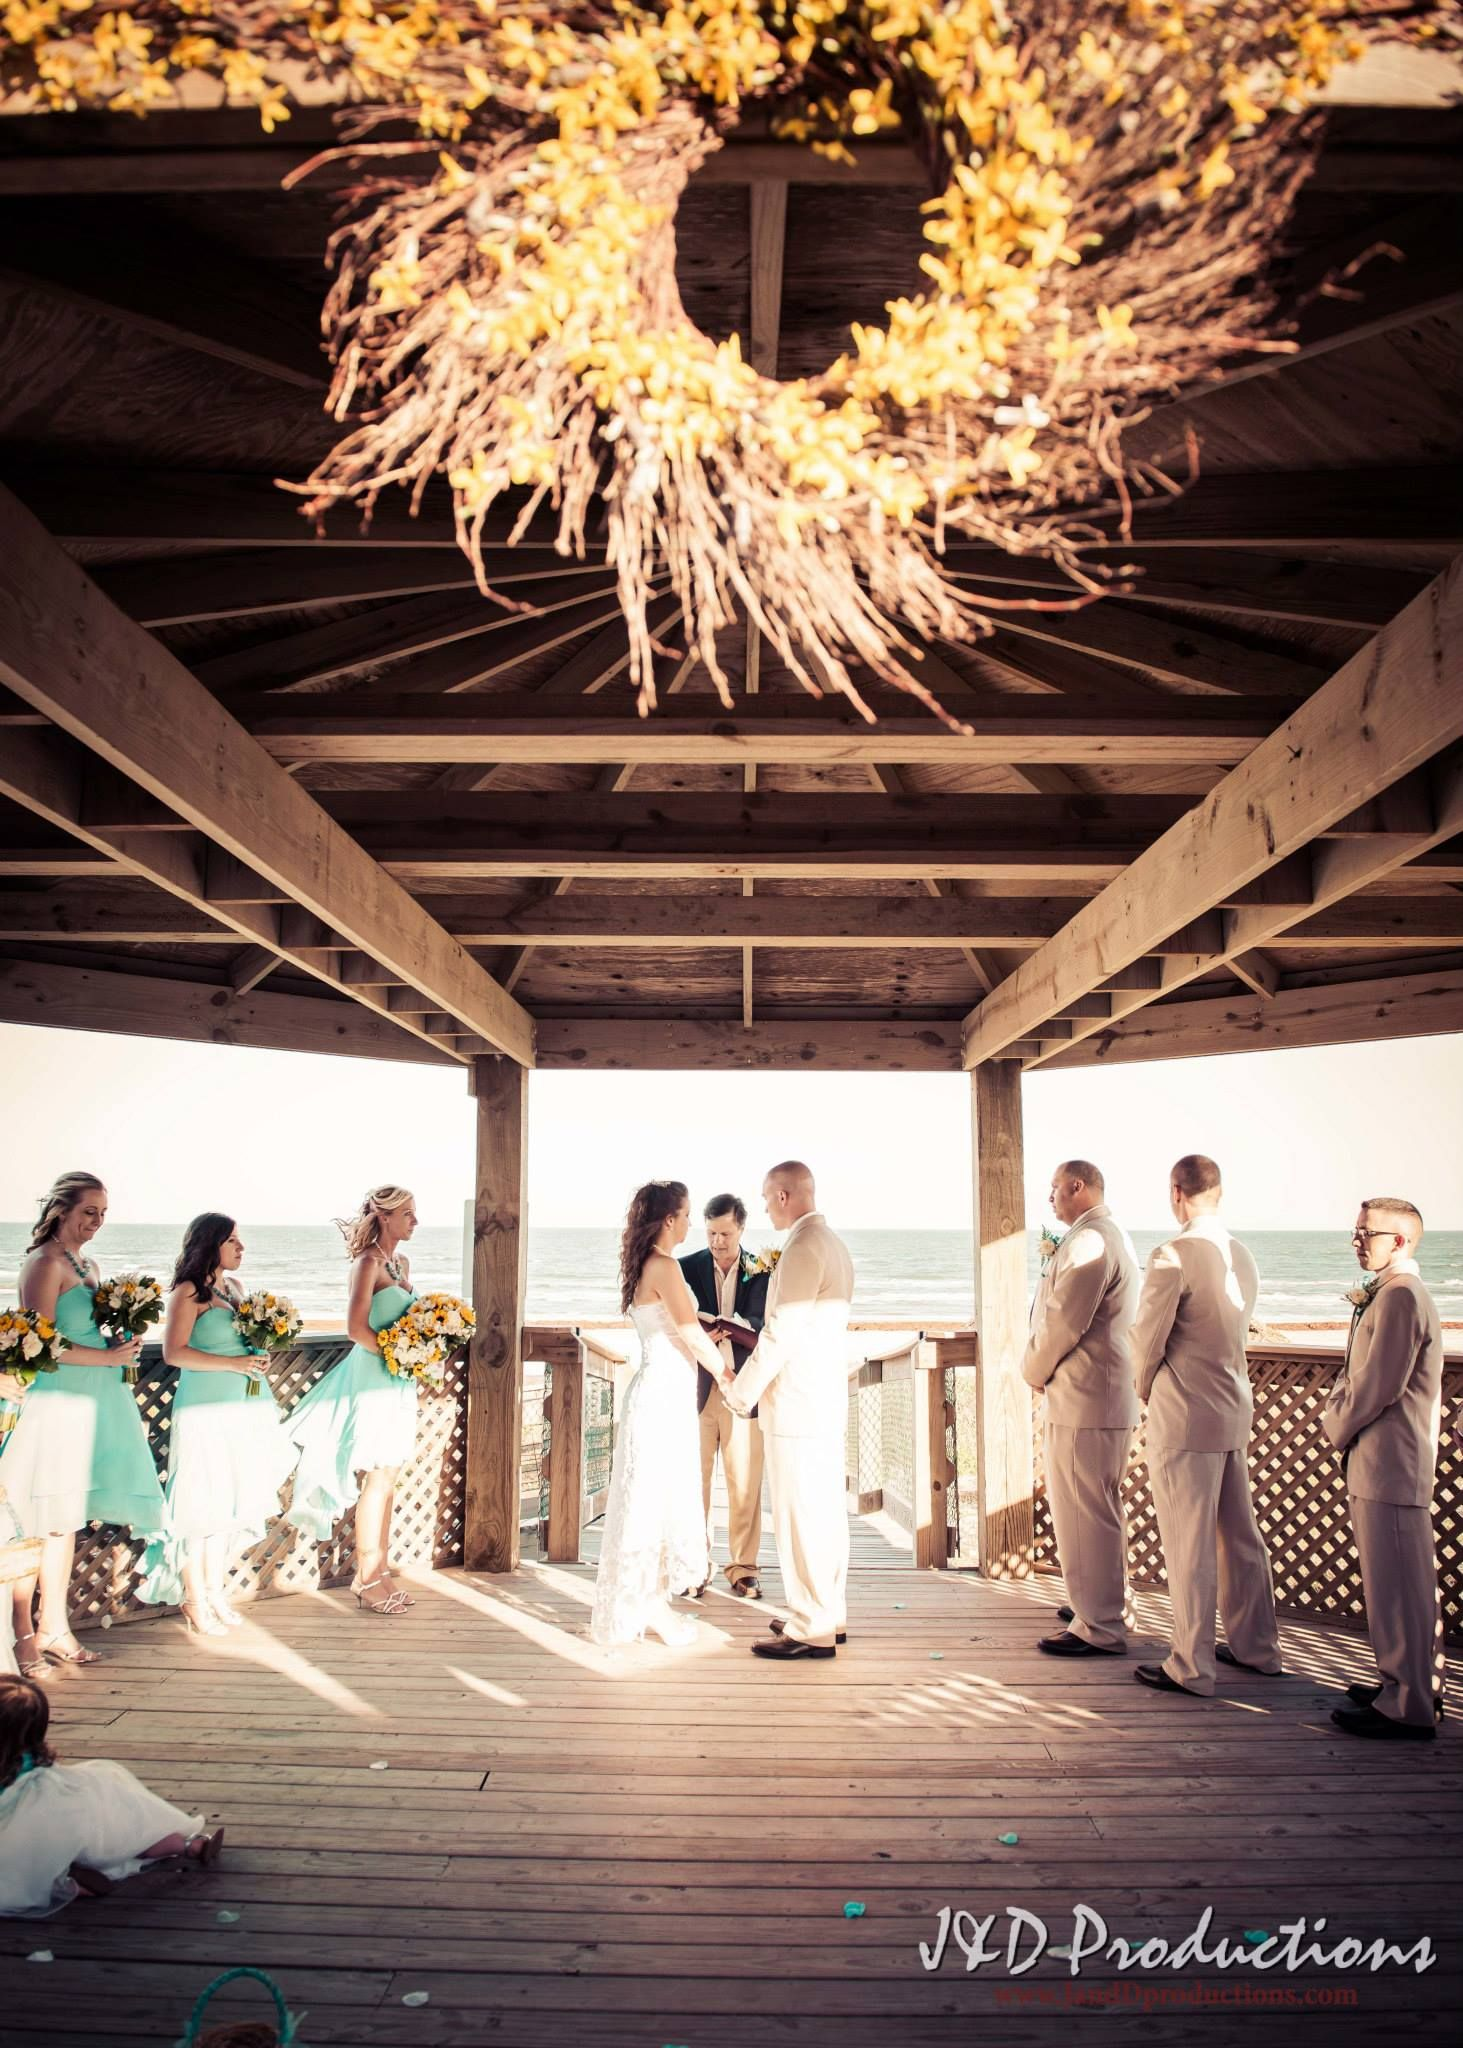 Brittany And Zach S Wedding At Stahlman Park In Surfside Beach Tx Texasweddingvenues Fabuloustexasweddingvenues Weddings Texasweddings